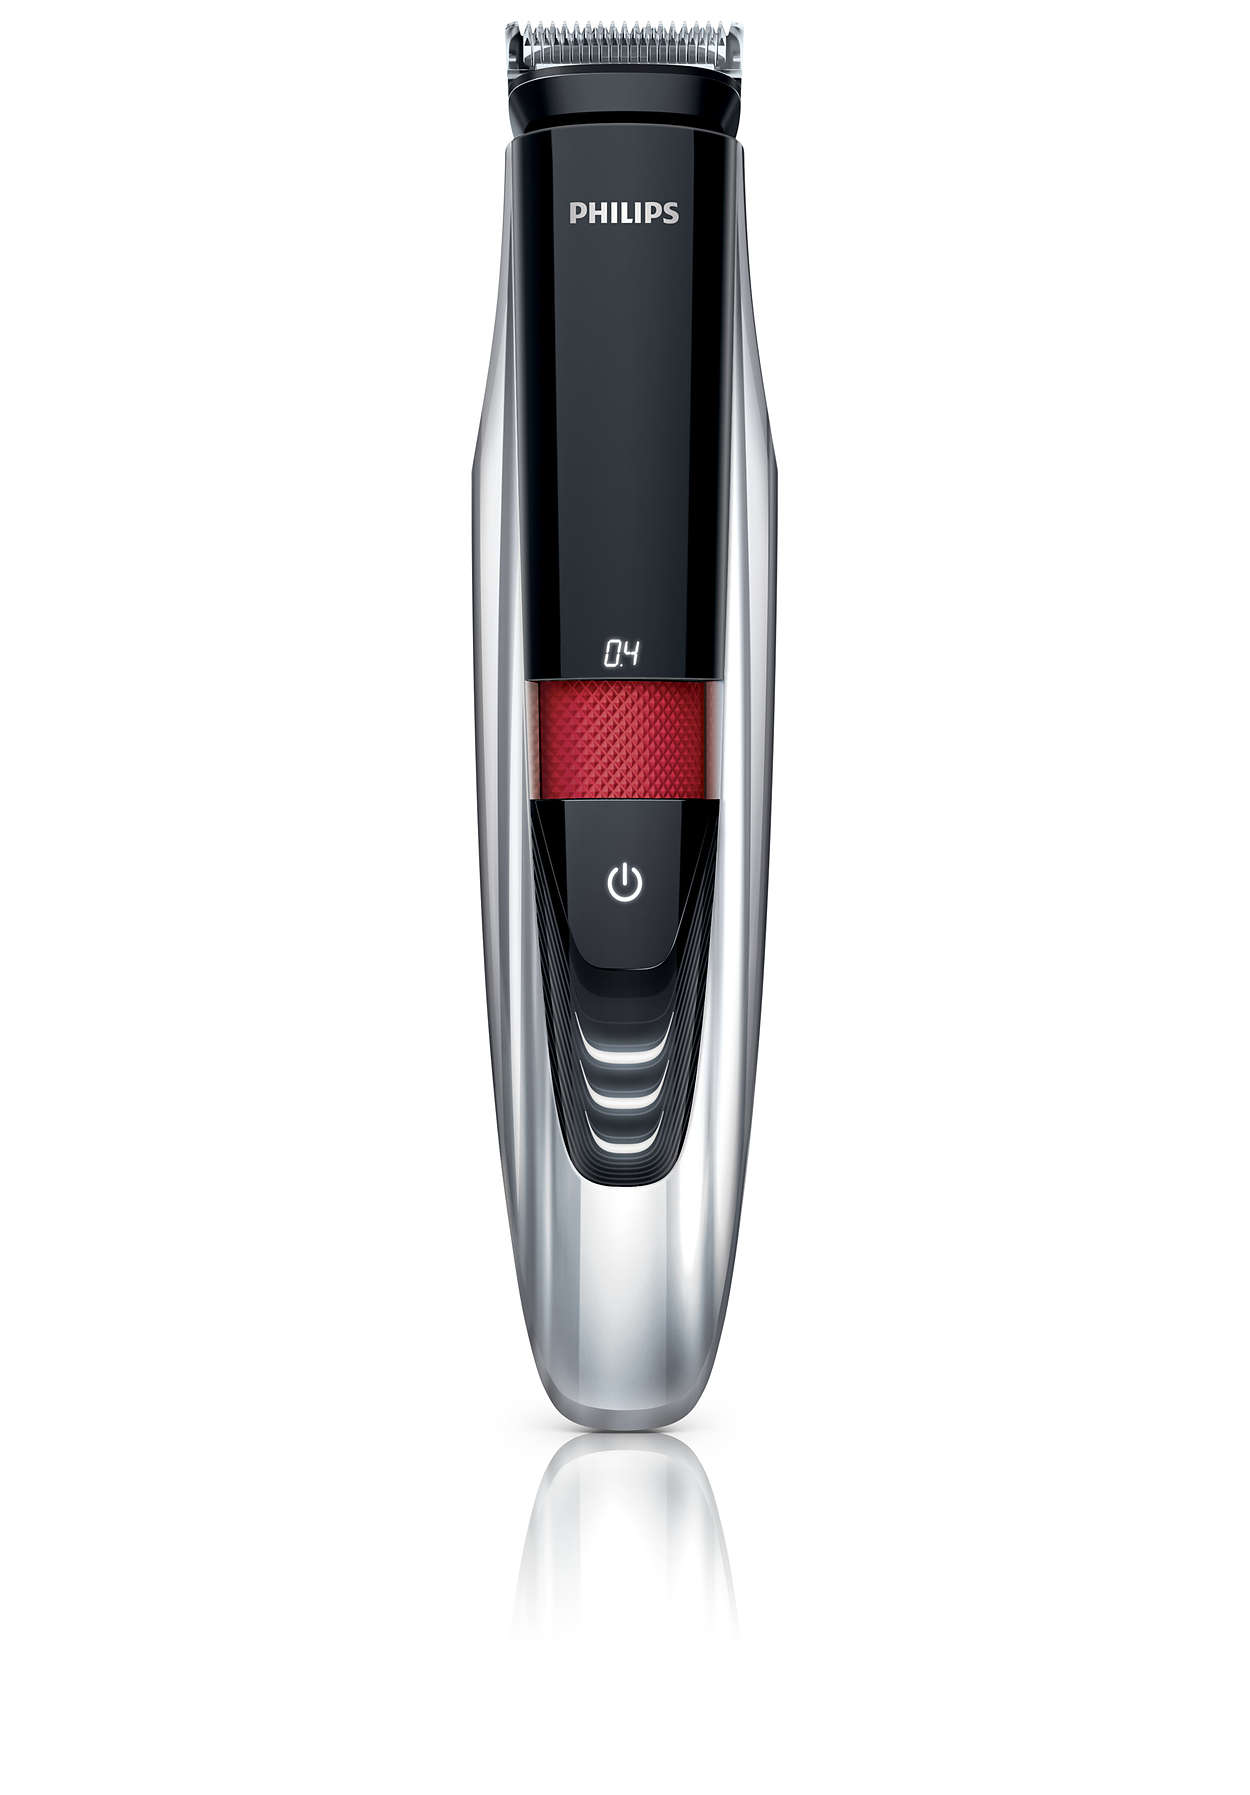 beardtrimmer series 9000 waterproof beard trimmer bt9280 15 philips. Black Bedroom Furniture Sets. Home Design Ideas